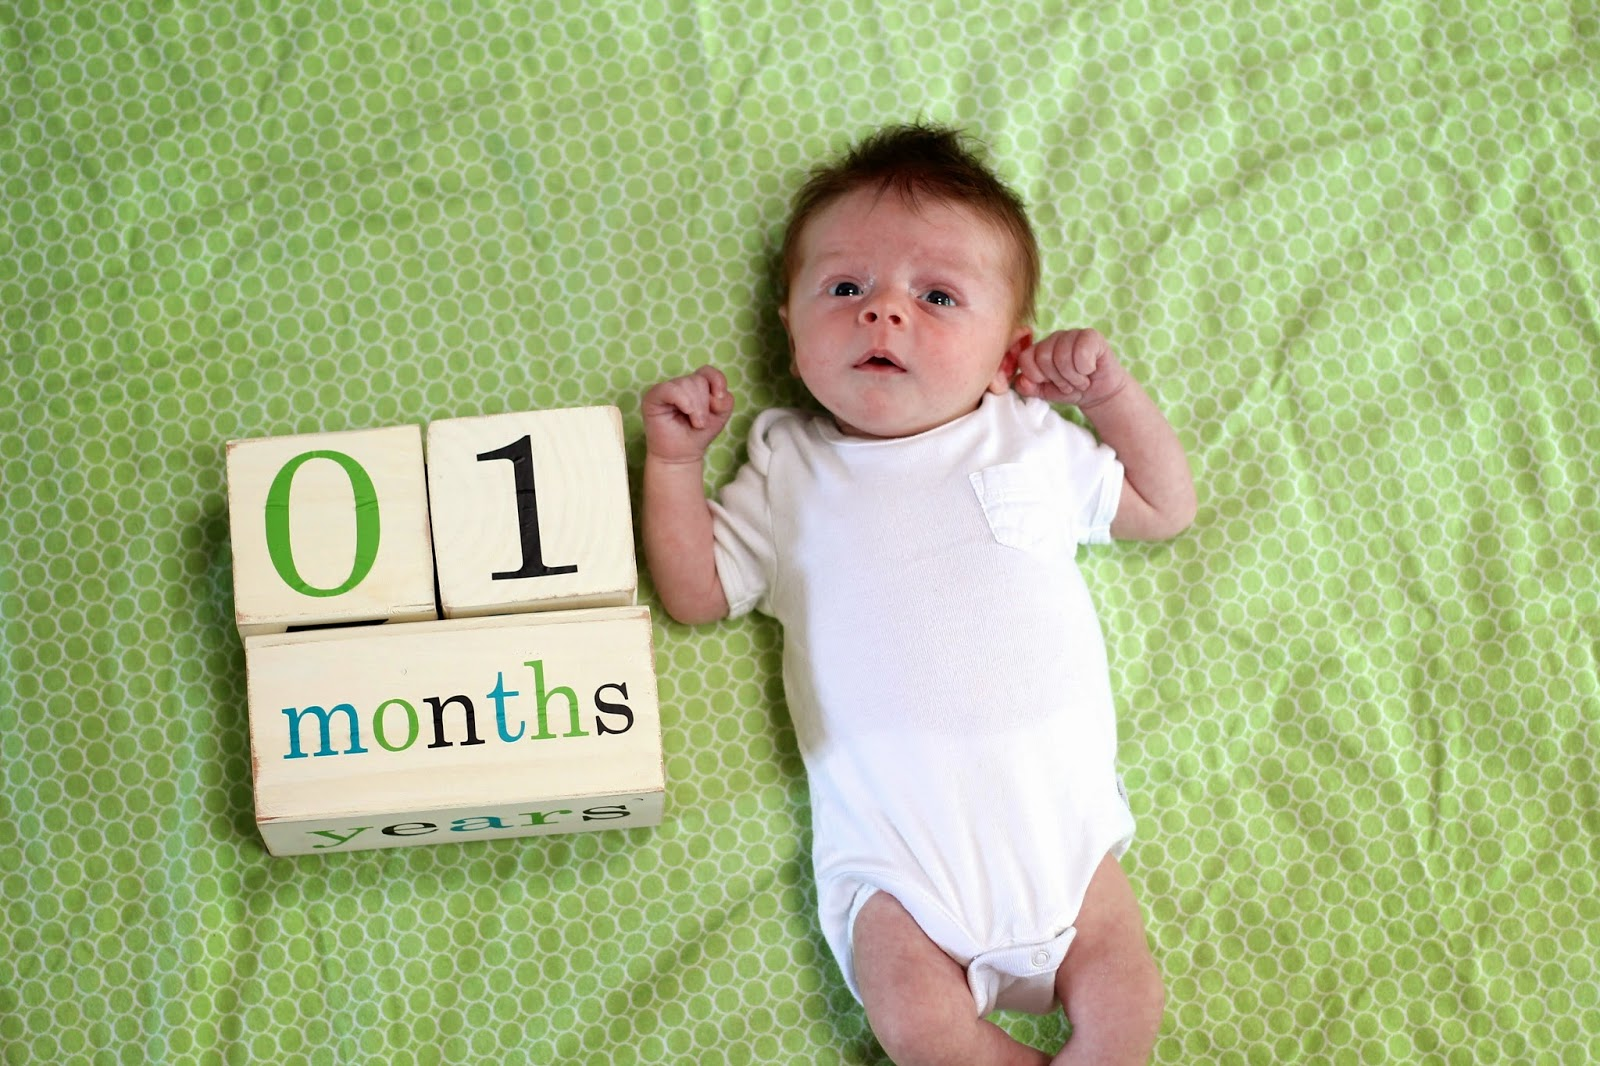 Well, now that we're a week and two days beyond your 1-month birthday, I'm  finally getting around to blogging about this big milestone!